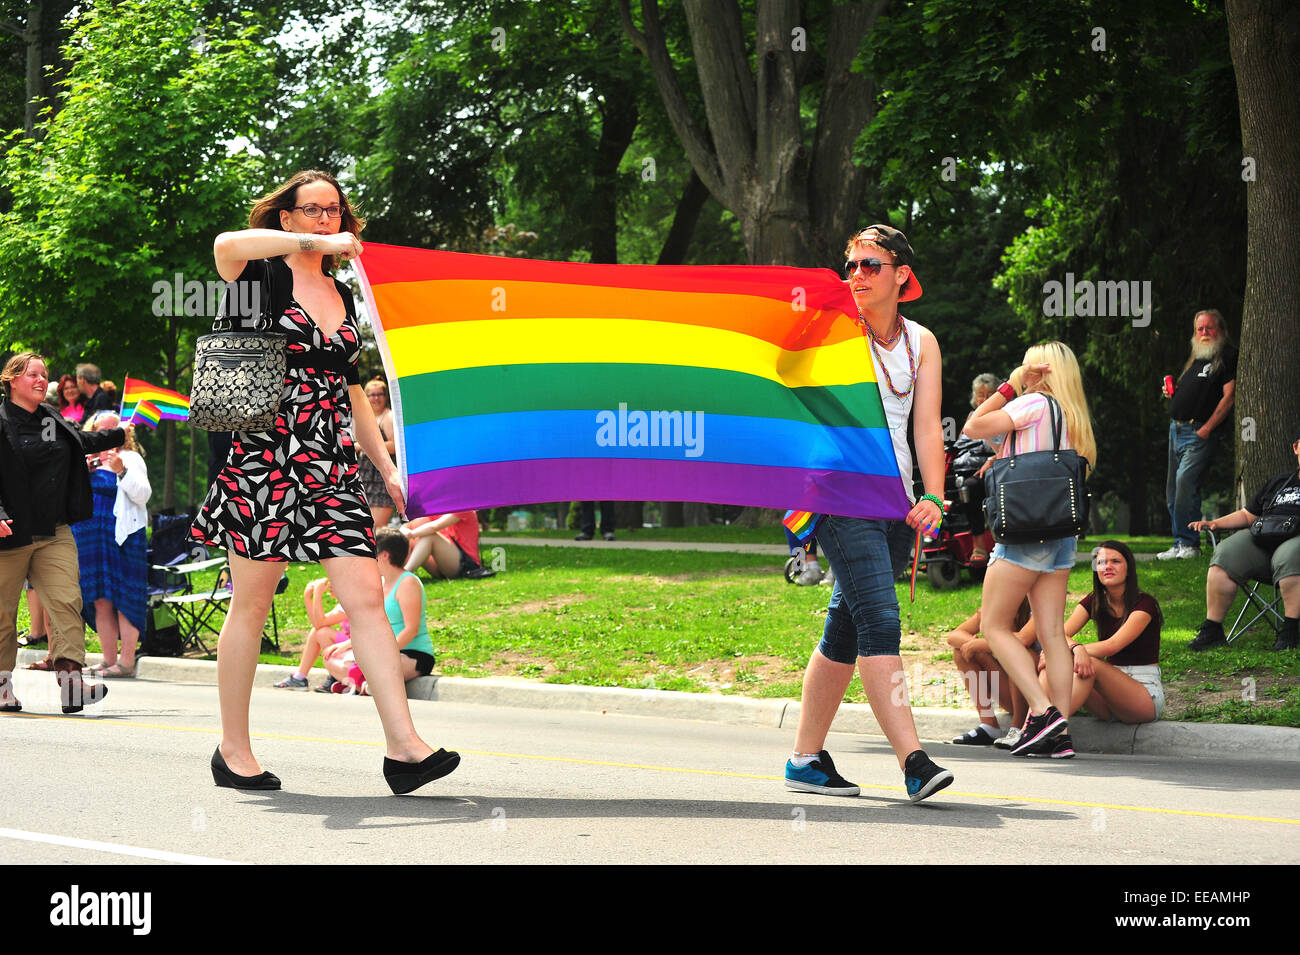 Women carrying the rainbow pride flag during a pride parade in London, Ontario. Stock Photo